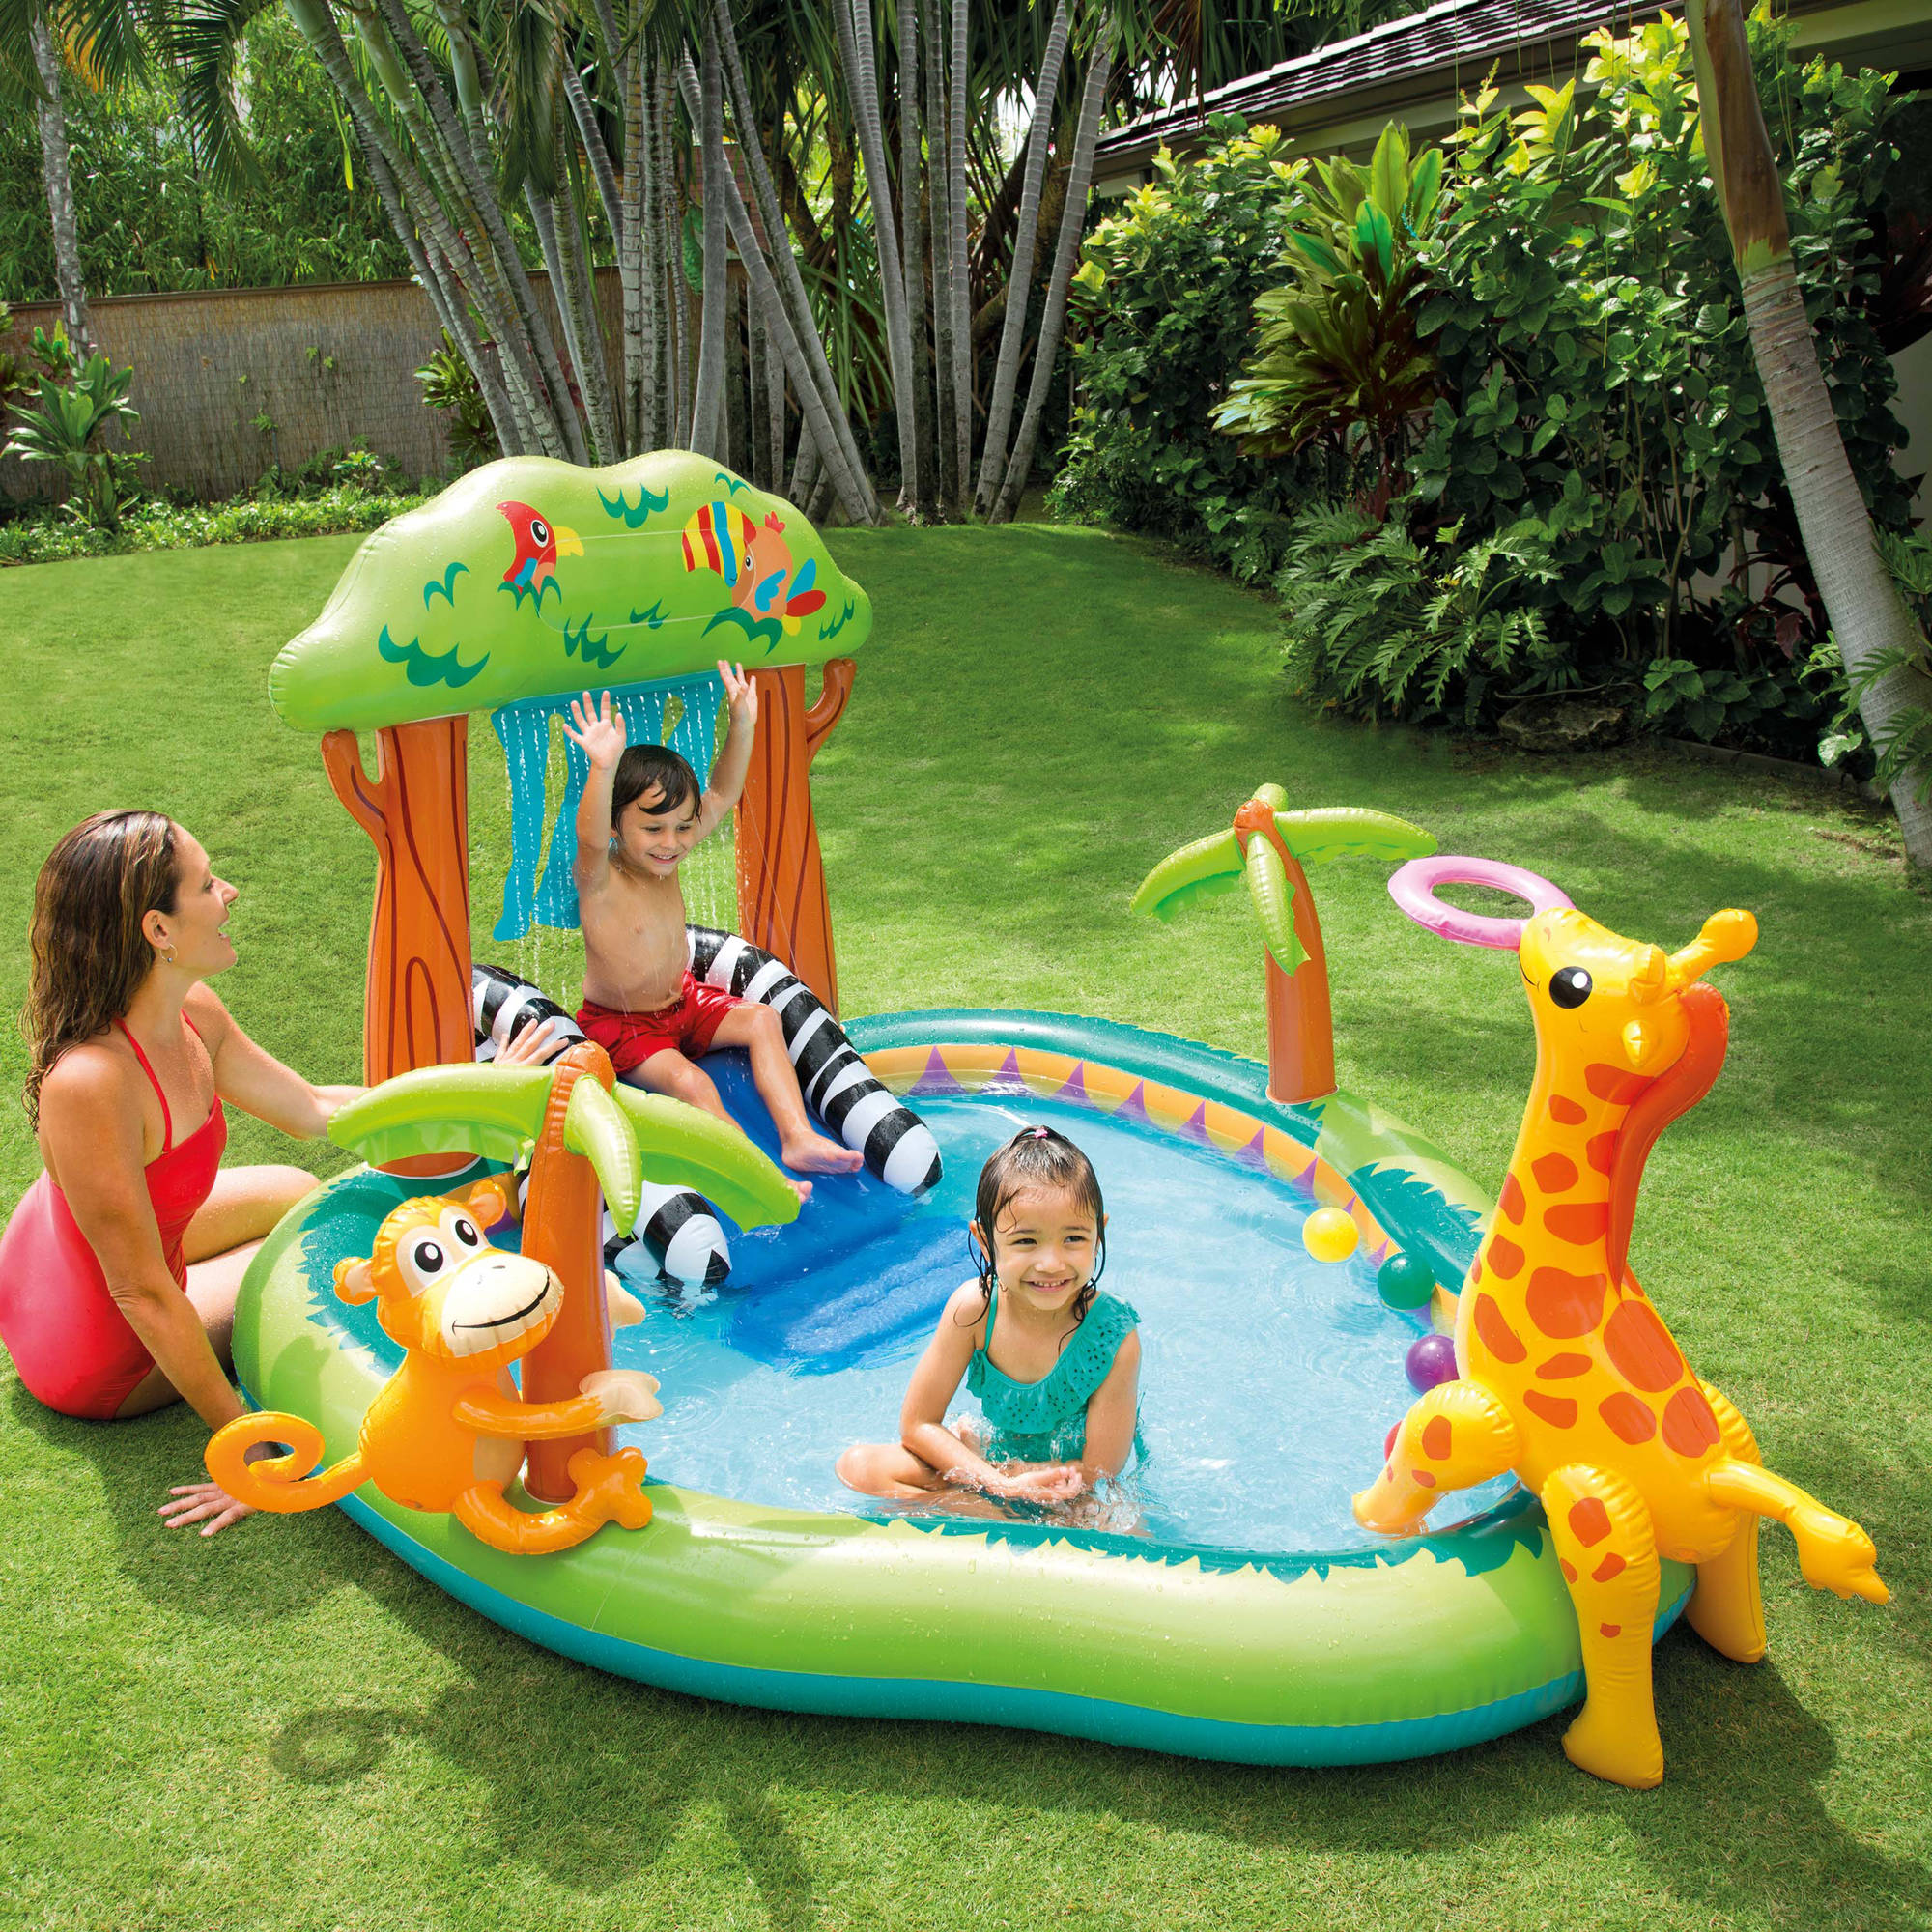 Inflatable Pool Slide Intex intex inflatable jungle play center with water slide and sprayer